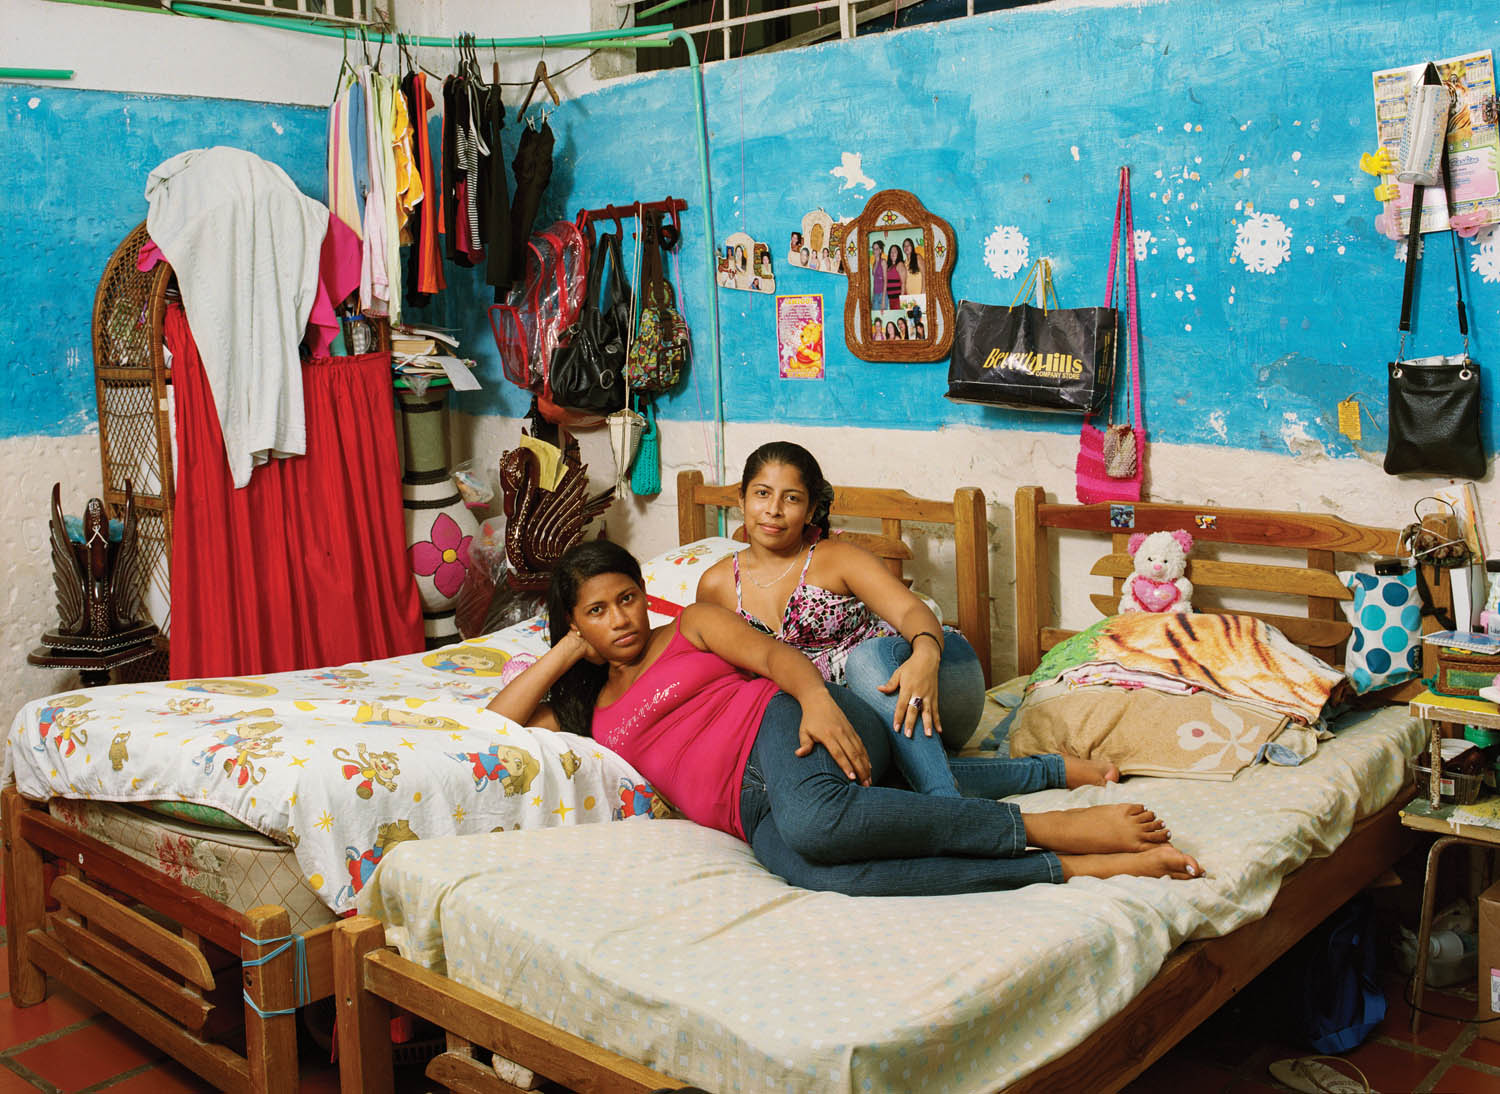 Group cell housing twelve inmates at San Diego Women's Prison. Cartagena, Colombia, 2011. Photograph by Jan Banning.